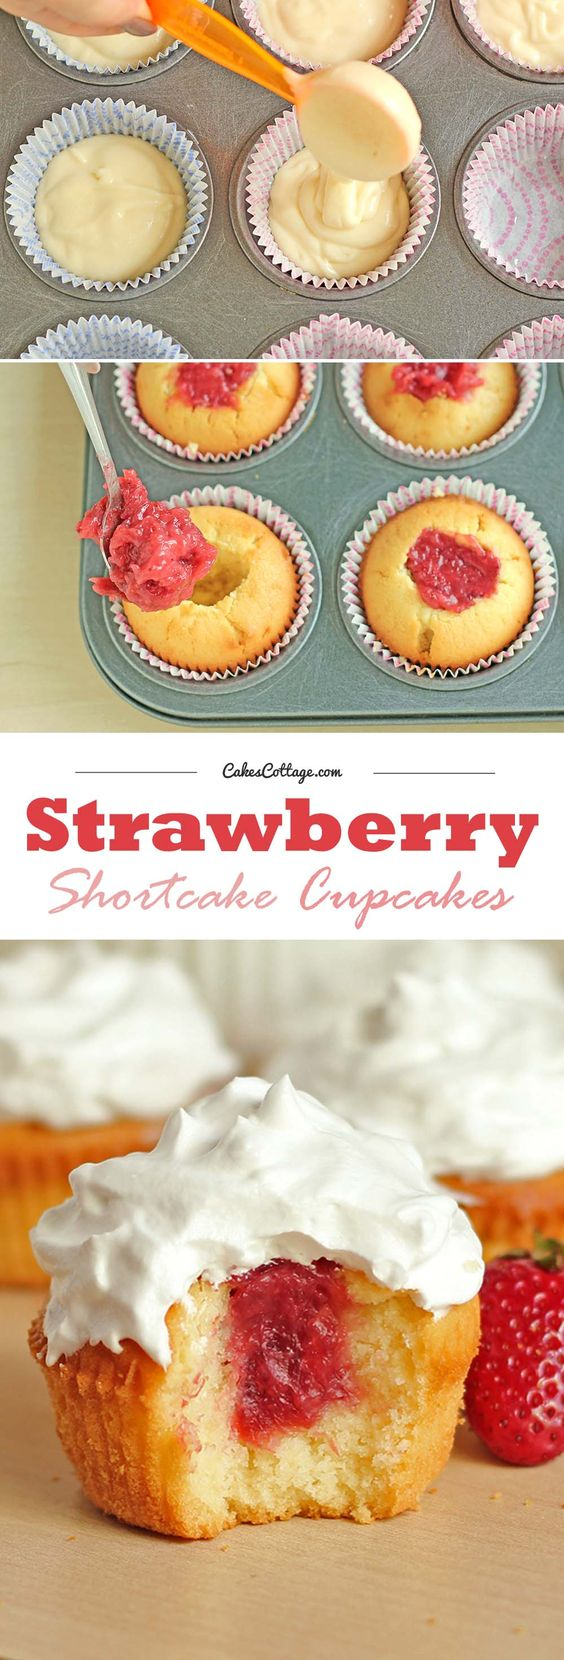 Strawberry Shortcake Cupcake, Strawberry Shortcake and Strawberries ...